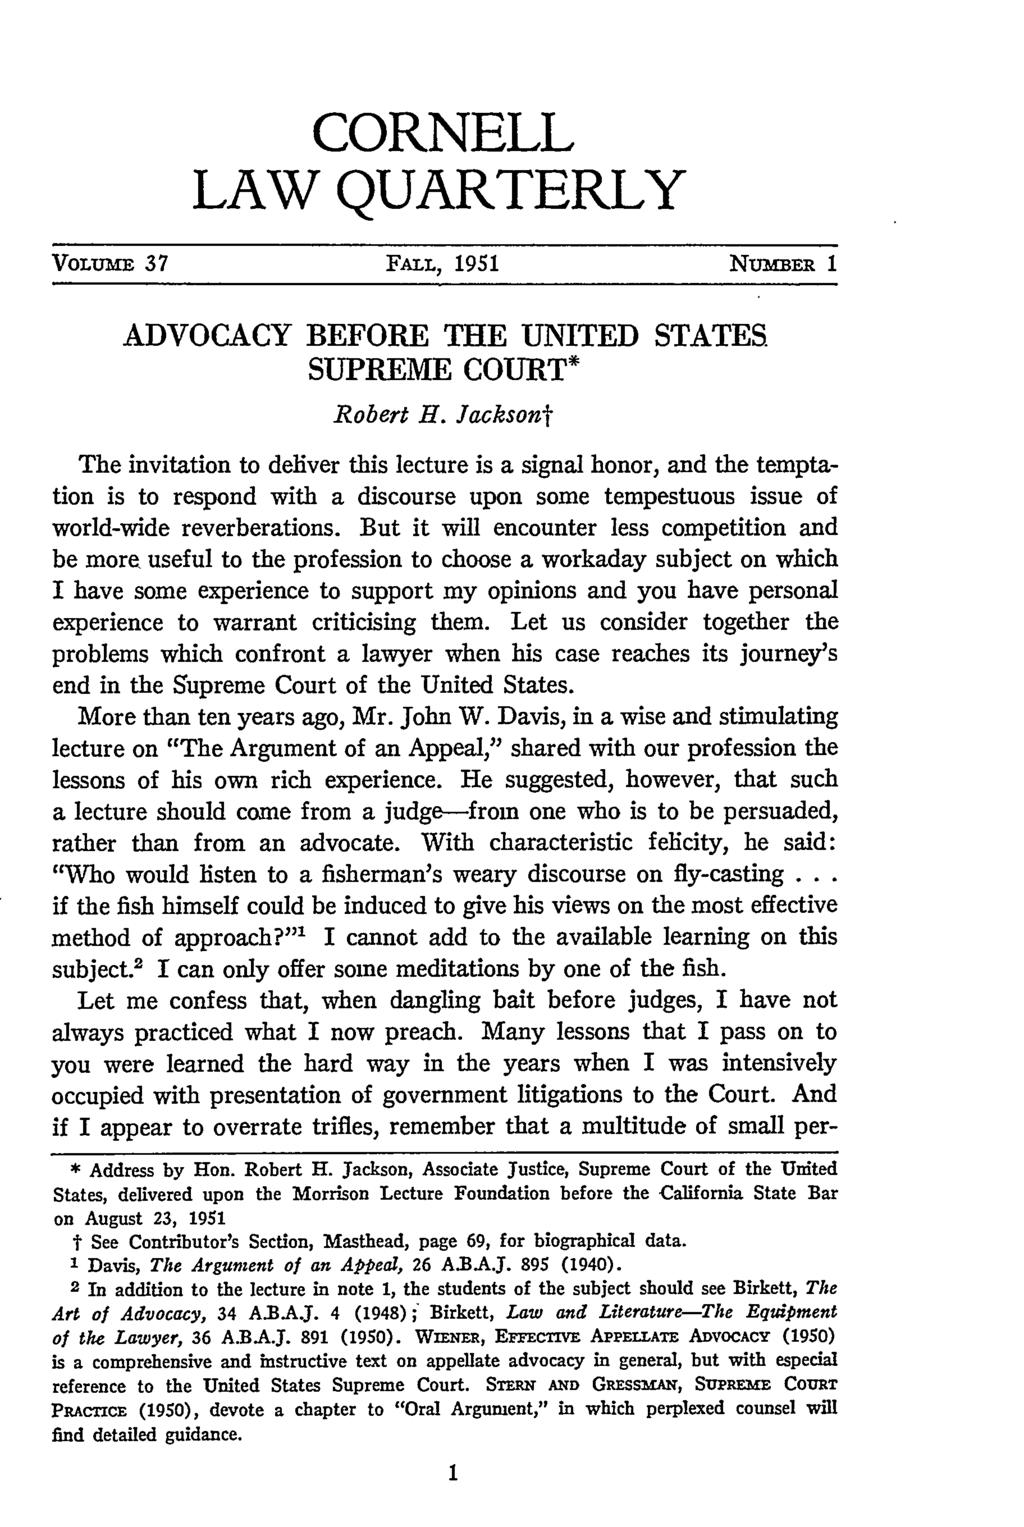 CORNELL LAW QUARTERLY VoLuM 37 FALL, 1951 NUMBER 1 ADVOCACY BEFORE THE UNITED STATES SUPREME COURT* Robert H.